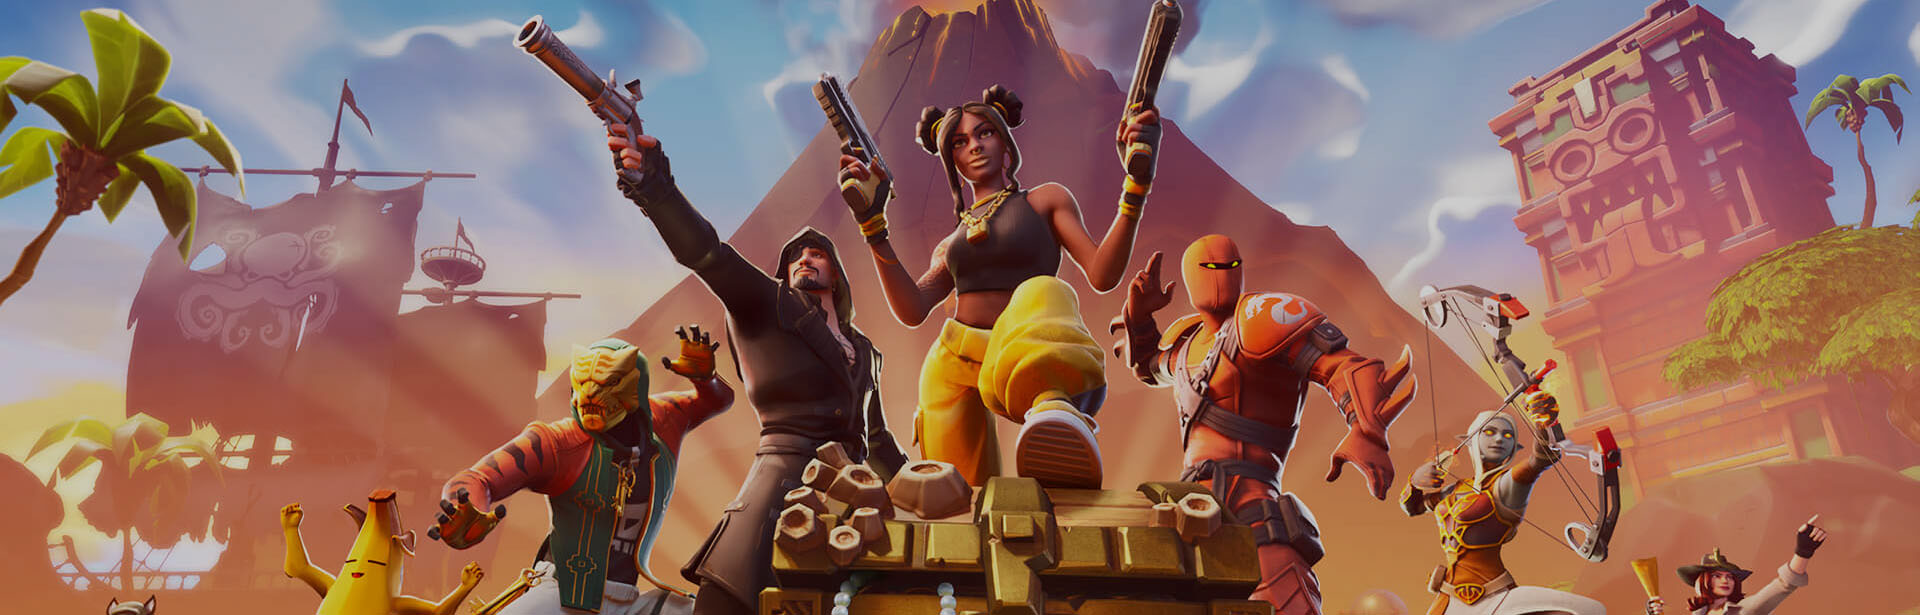 Fortnite Game Guide header